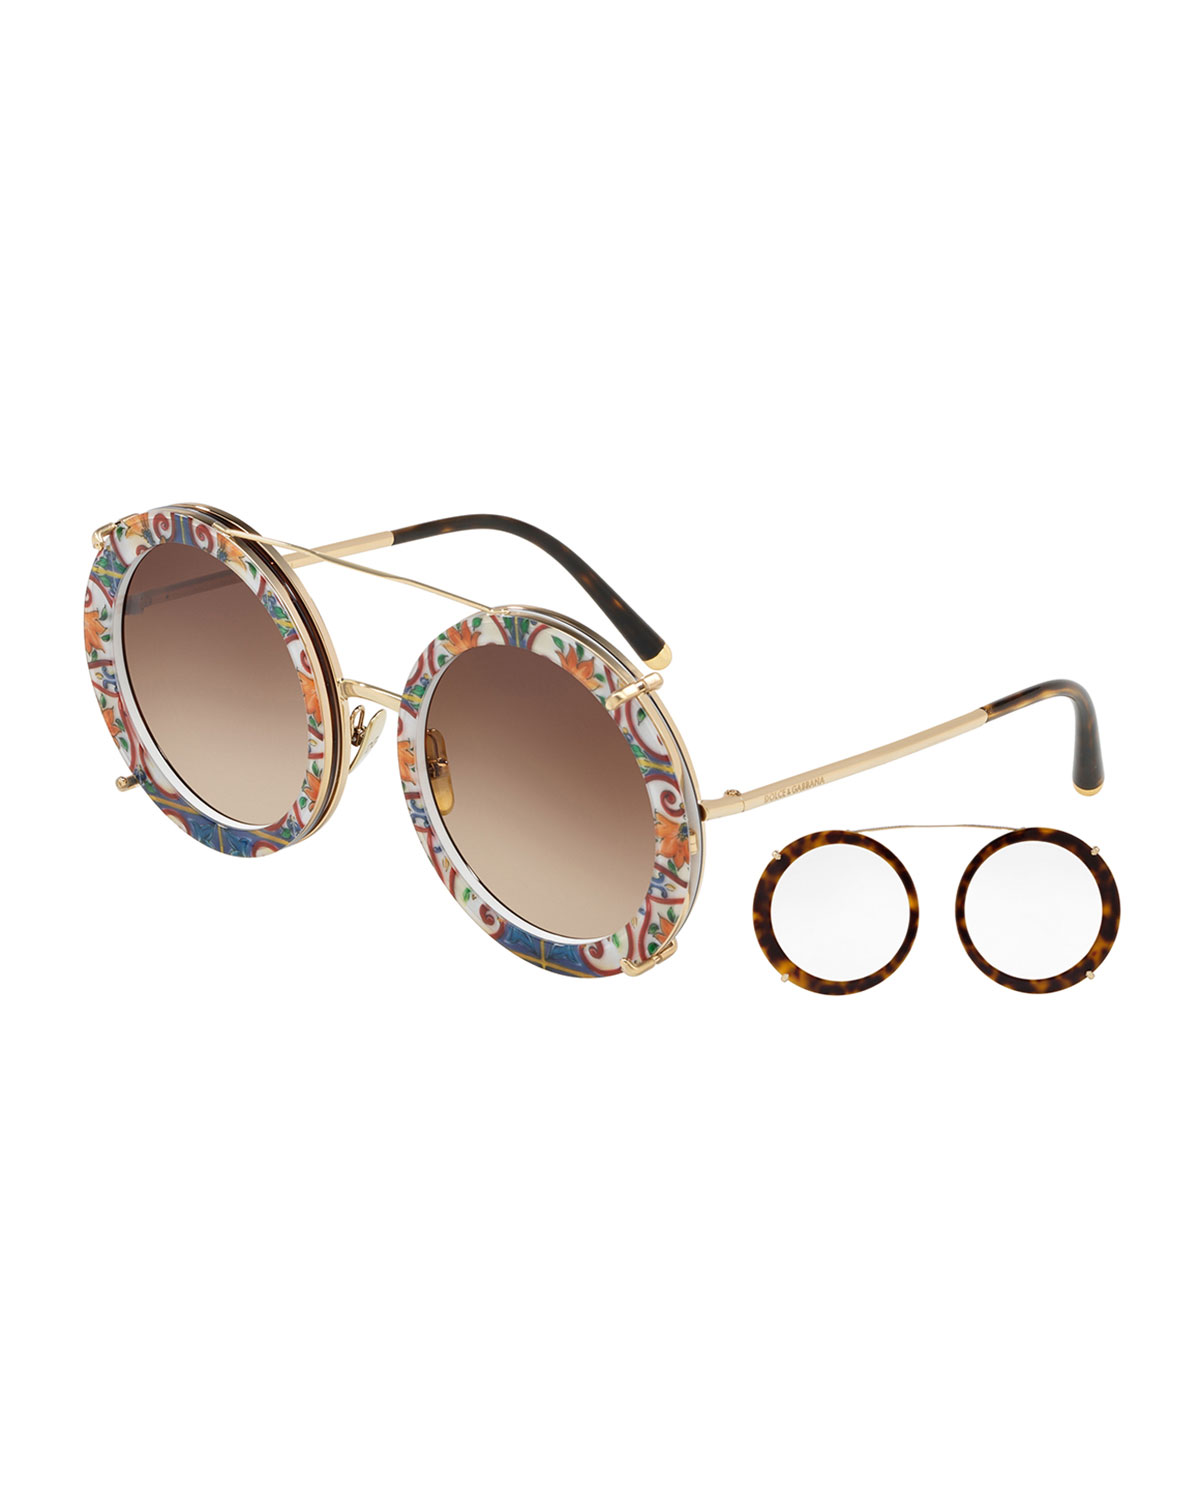 6744aa5d56ed8 Dolce   Gabbana Round Clip-On Front Metal Sunglasses